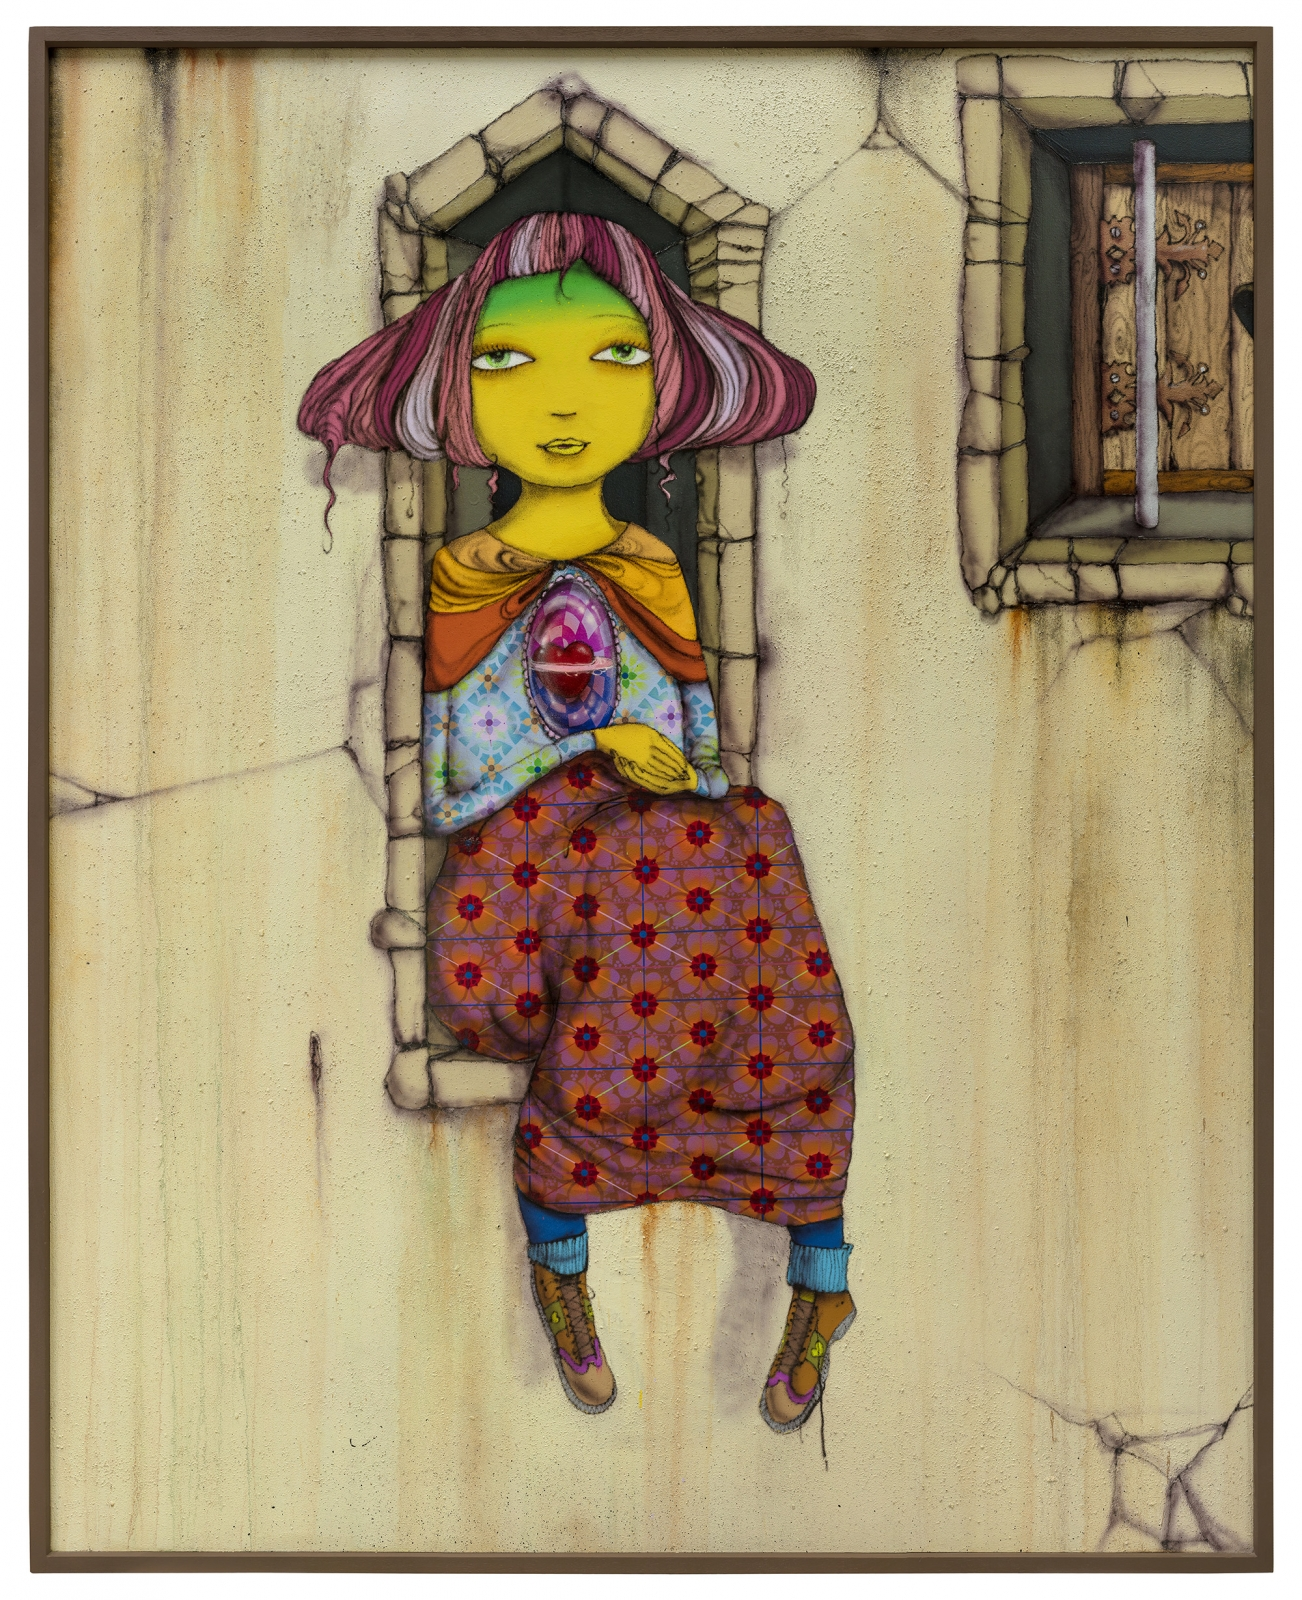 OSGEMEOS, When the leaves turn yellow, 2018